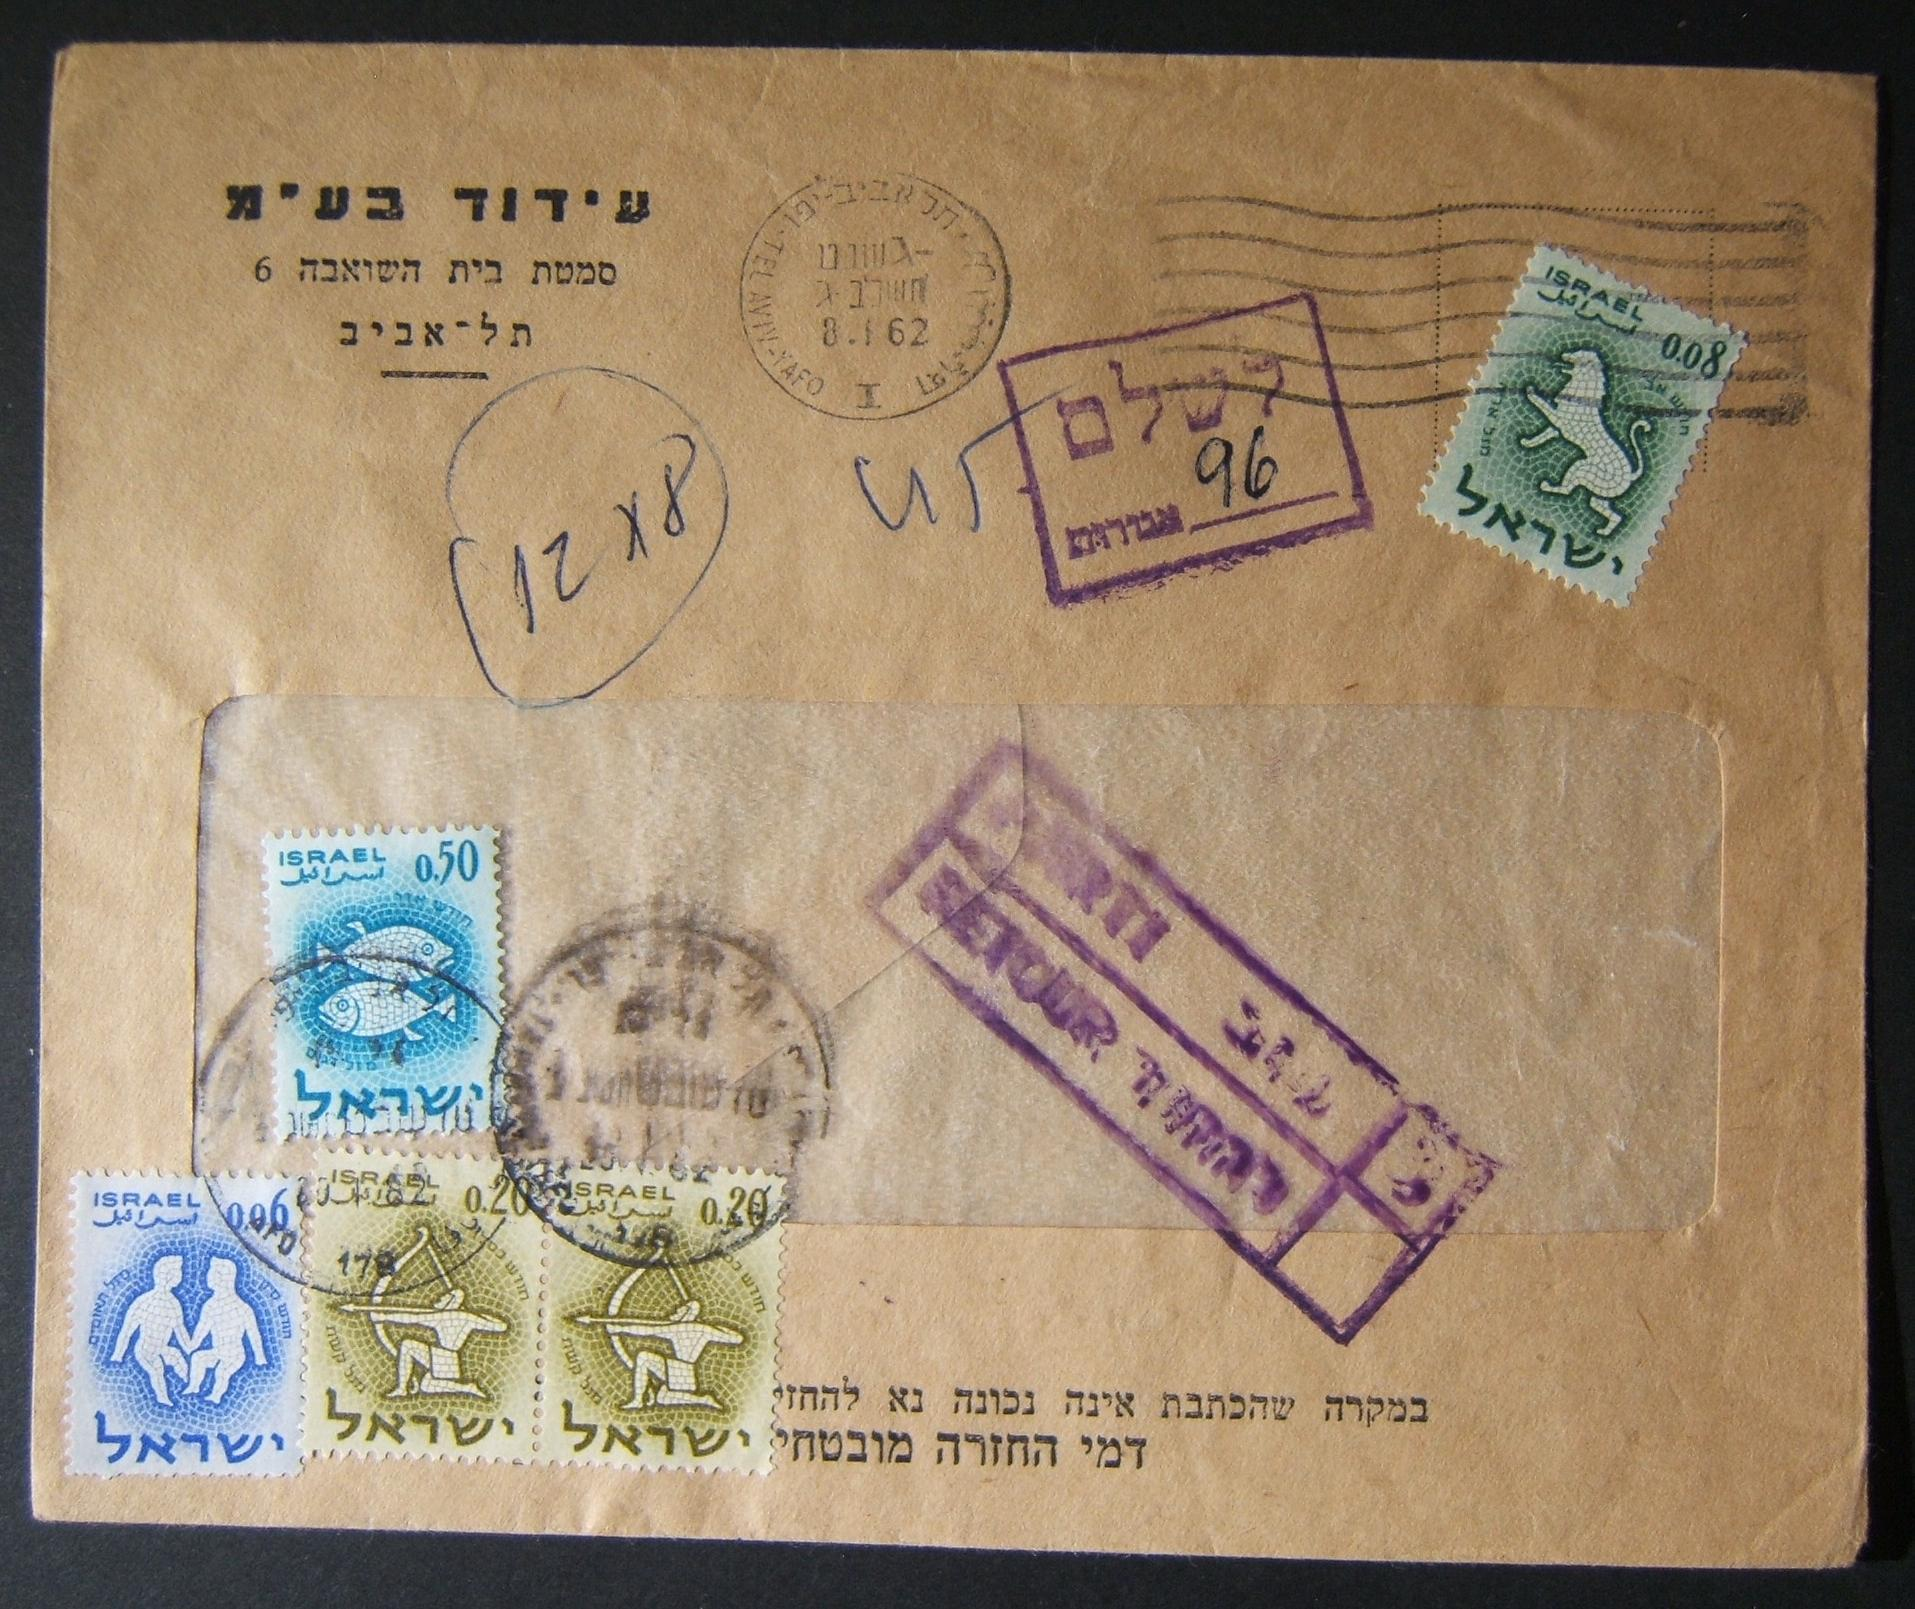 1962 domestic 'top of the pile' taxed franking: 8-1-62 printed matter commercial cover ex TLV branch of Idud Ltd. franked by 8 Ag at new DO-11 PM rate using 1961 Zodiac Ba208, but